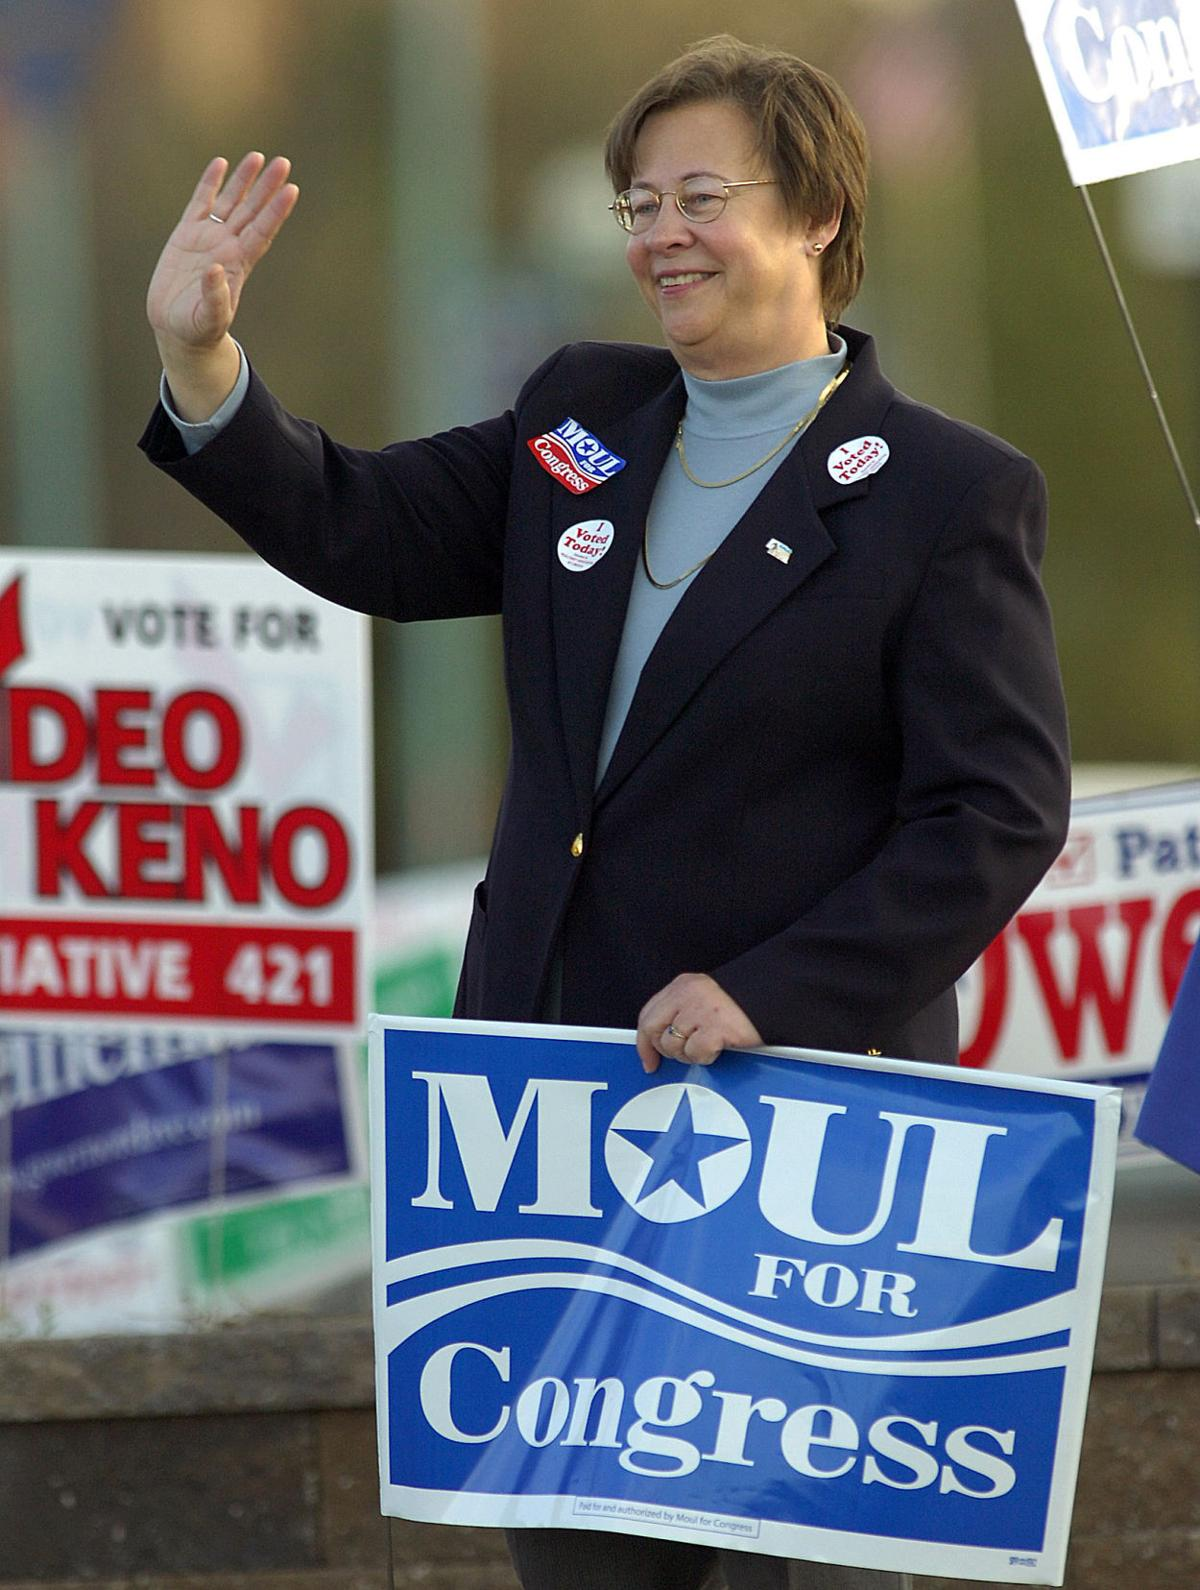 Maxine Moul campaigns for Congress, 27th & Vine, Nov. 2006